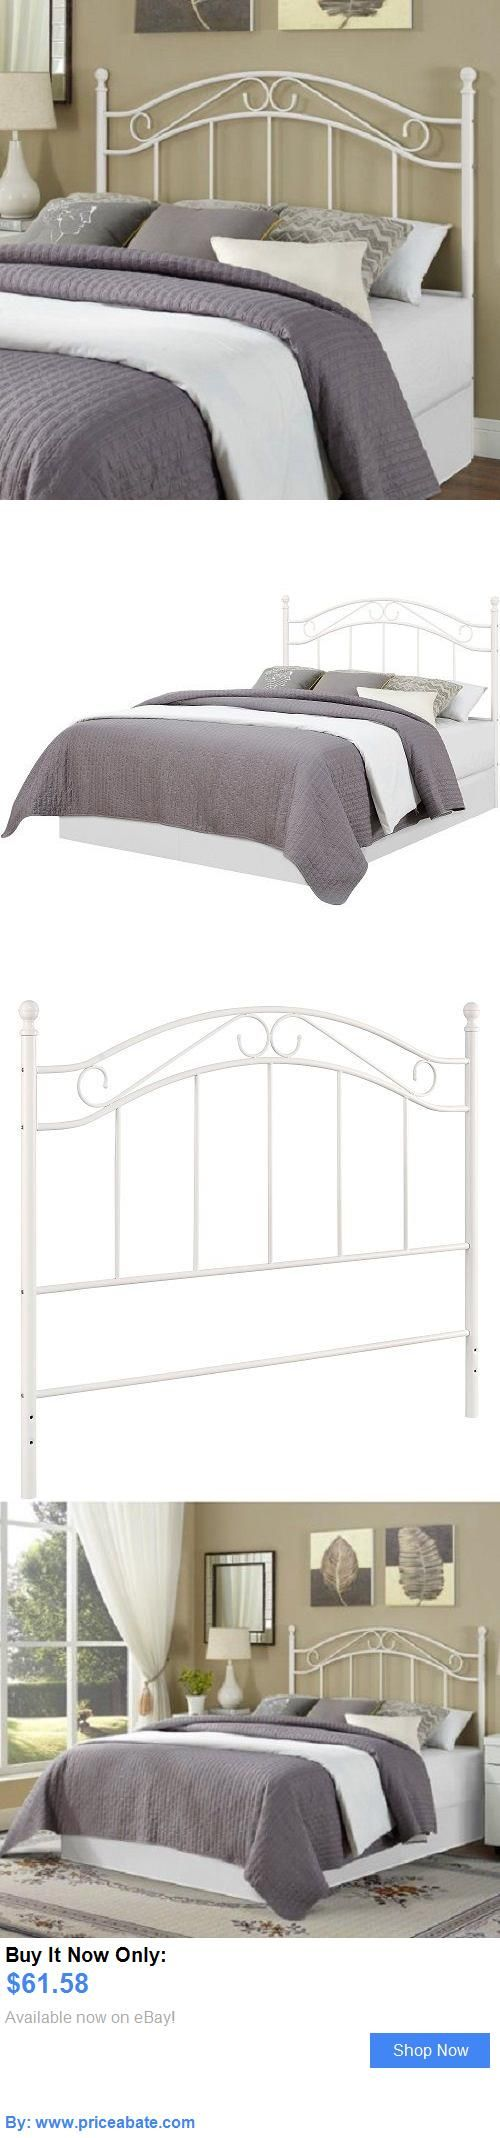 bedding white queen full size metal bedroom headboard bed frame furniture mainstays new buy it - Buy Queen Bed Frame